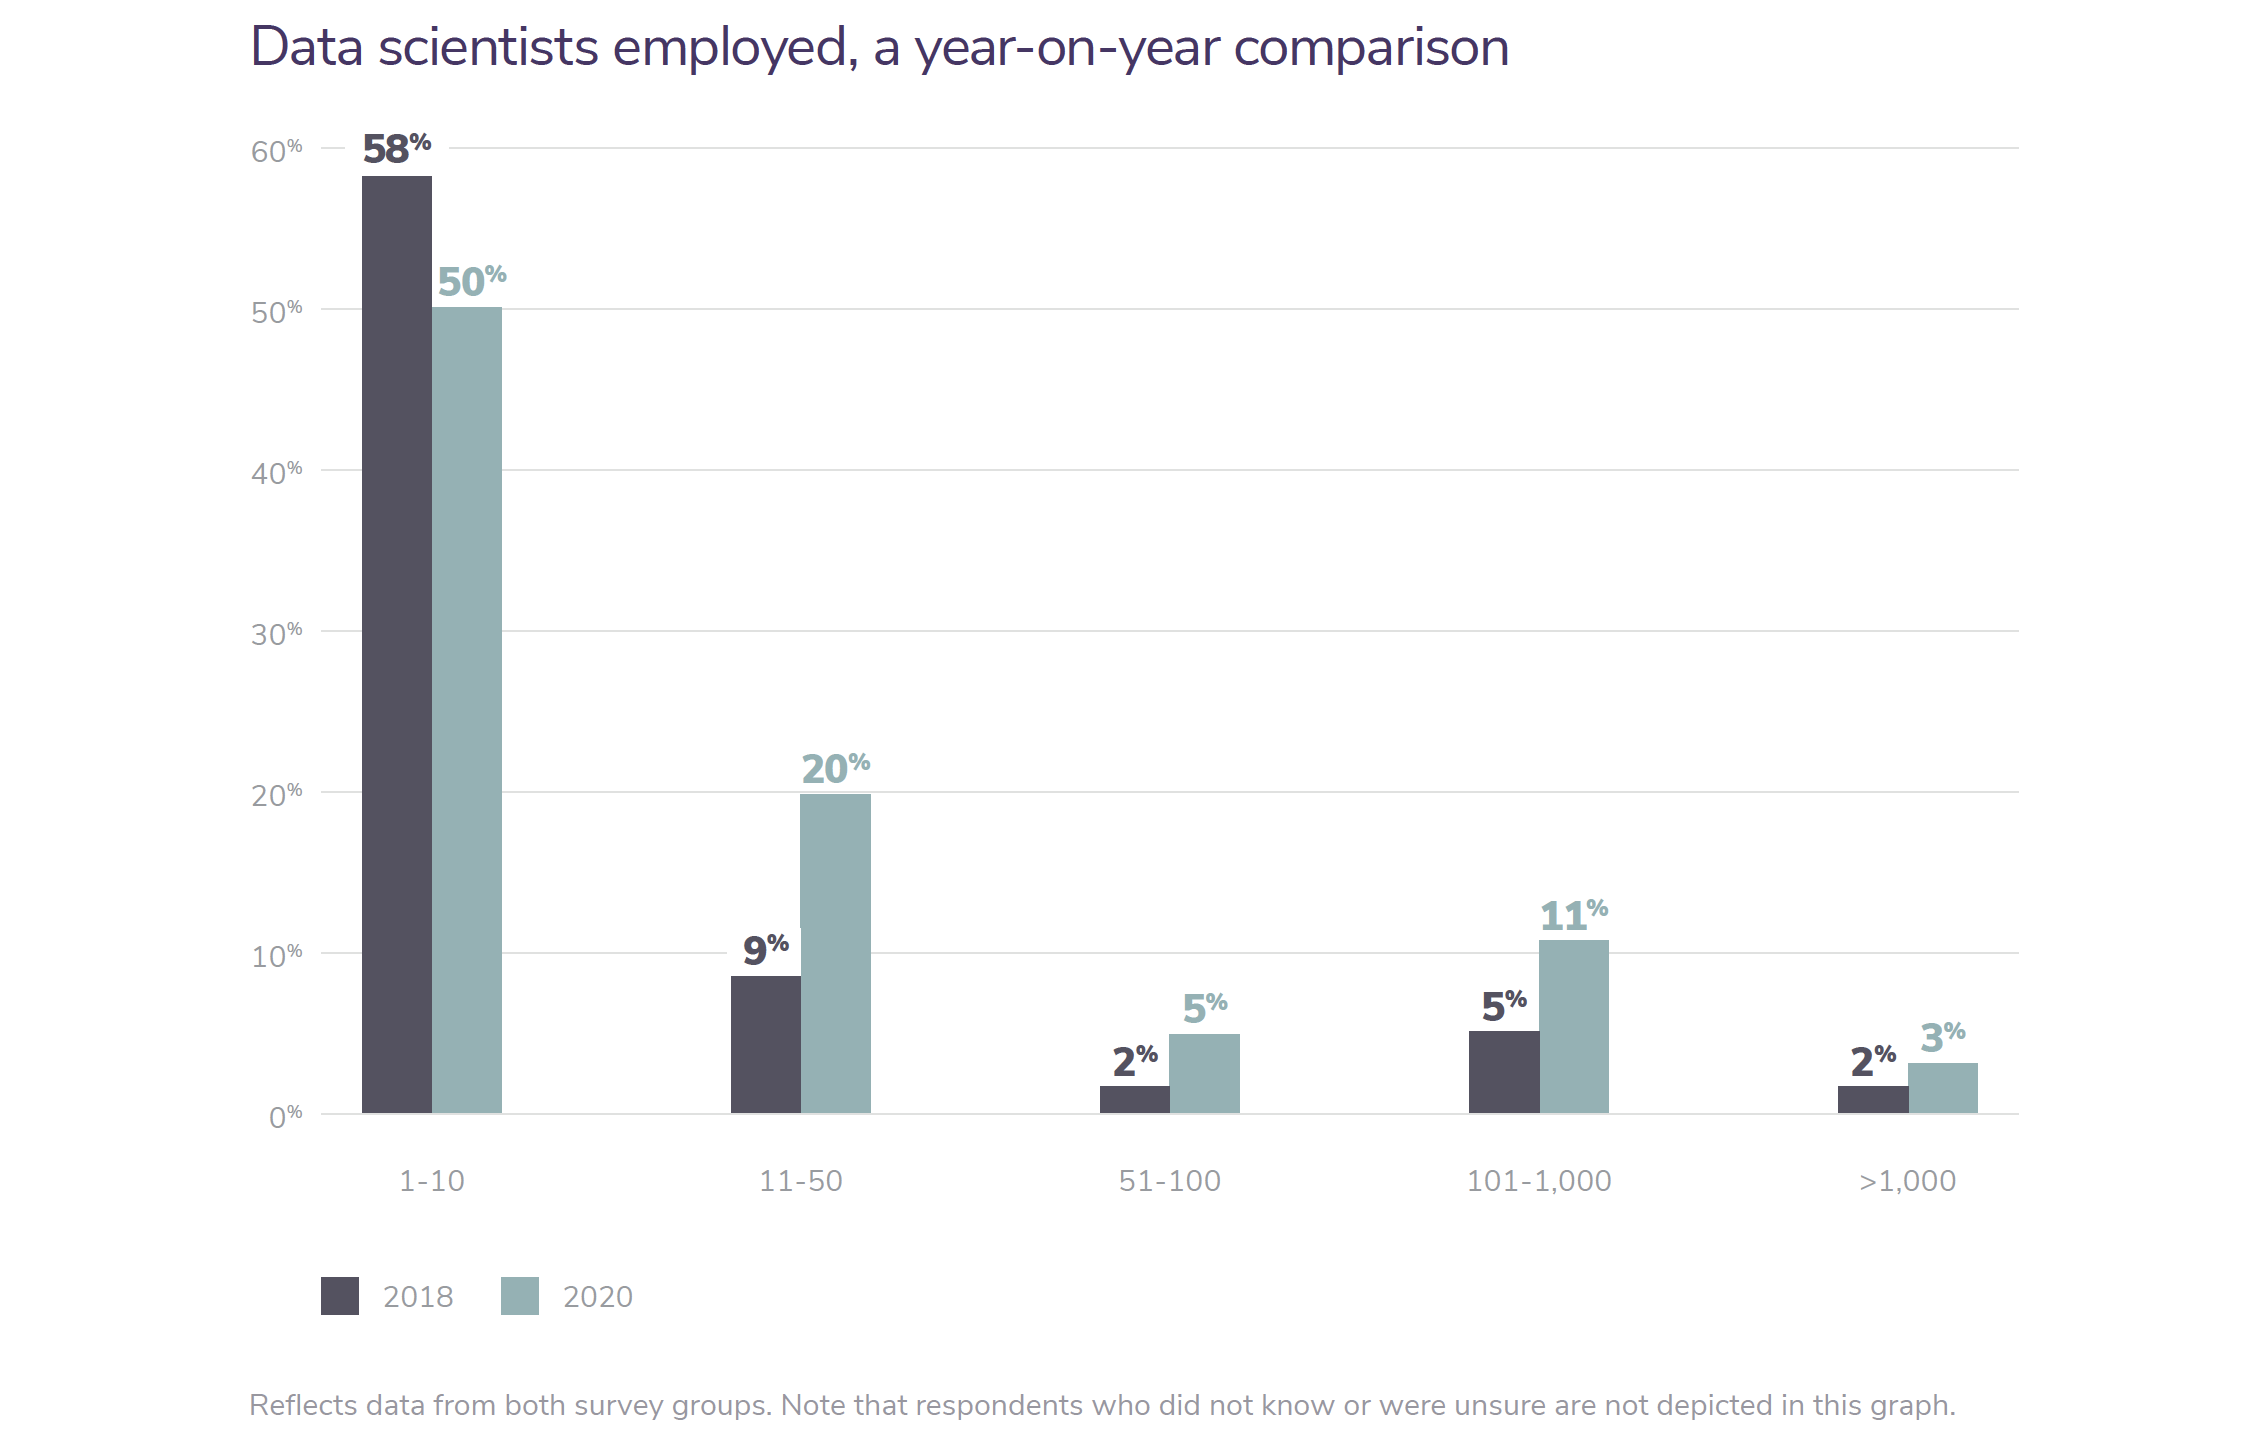 Graph showing the number of data scientists employed from 2018 to 2019